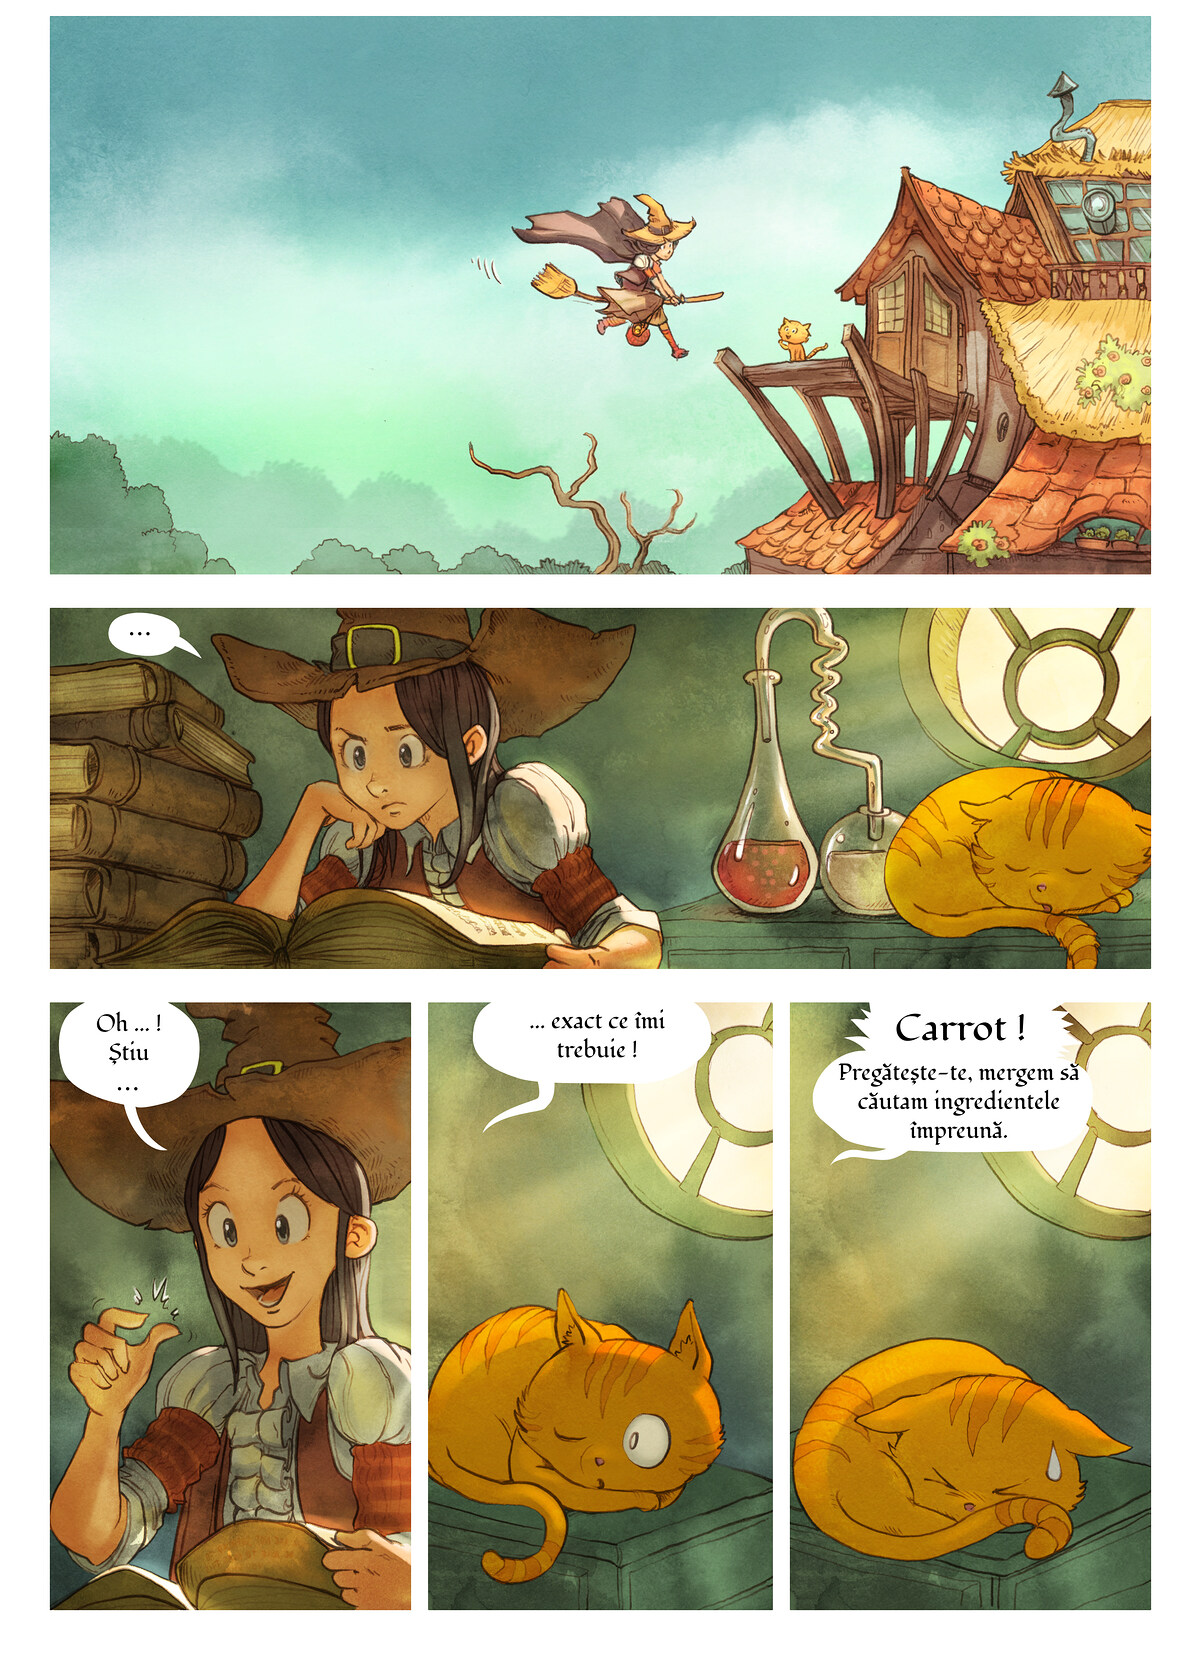 A webcomic page of Pepper&Carrot, episode 3 [ro], page 4